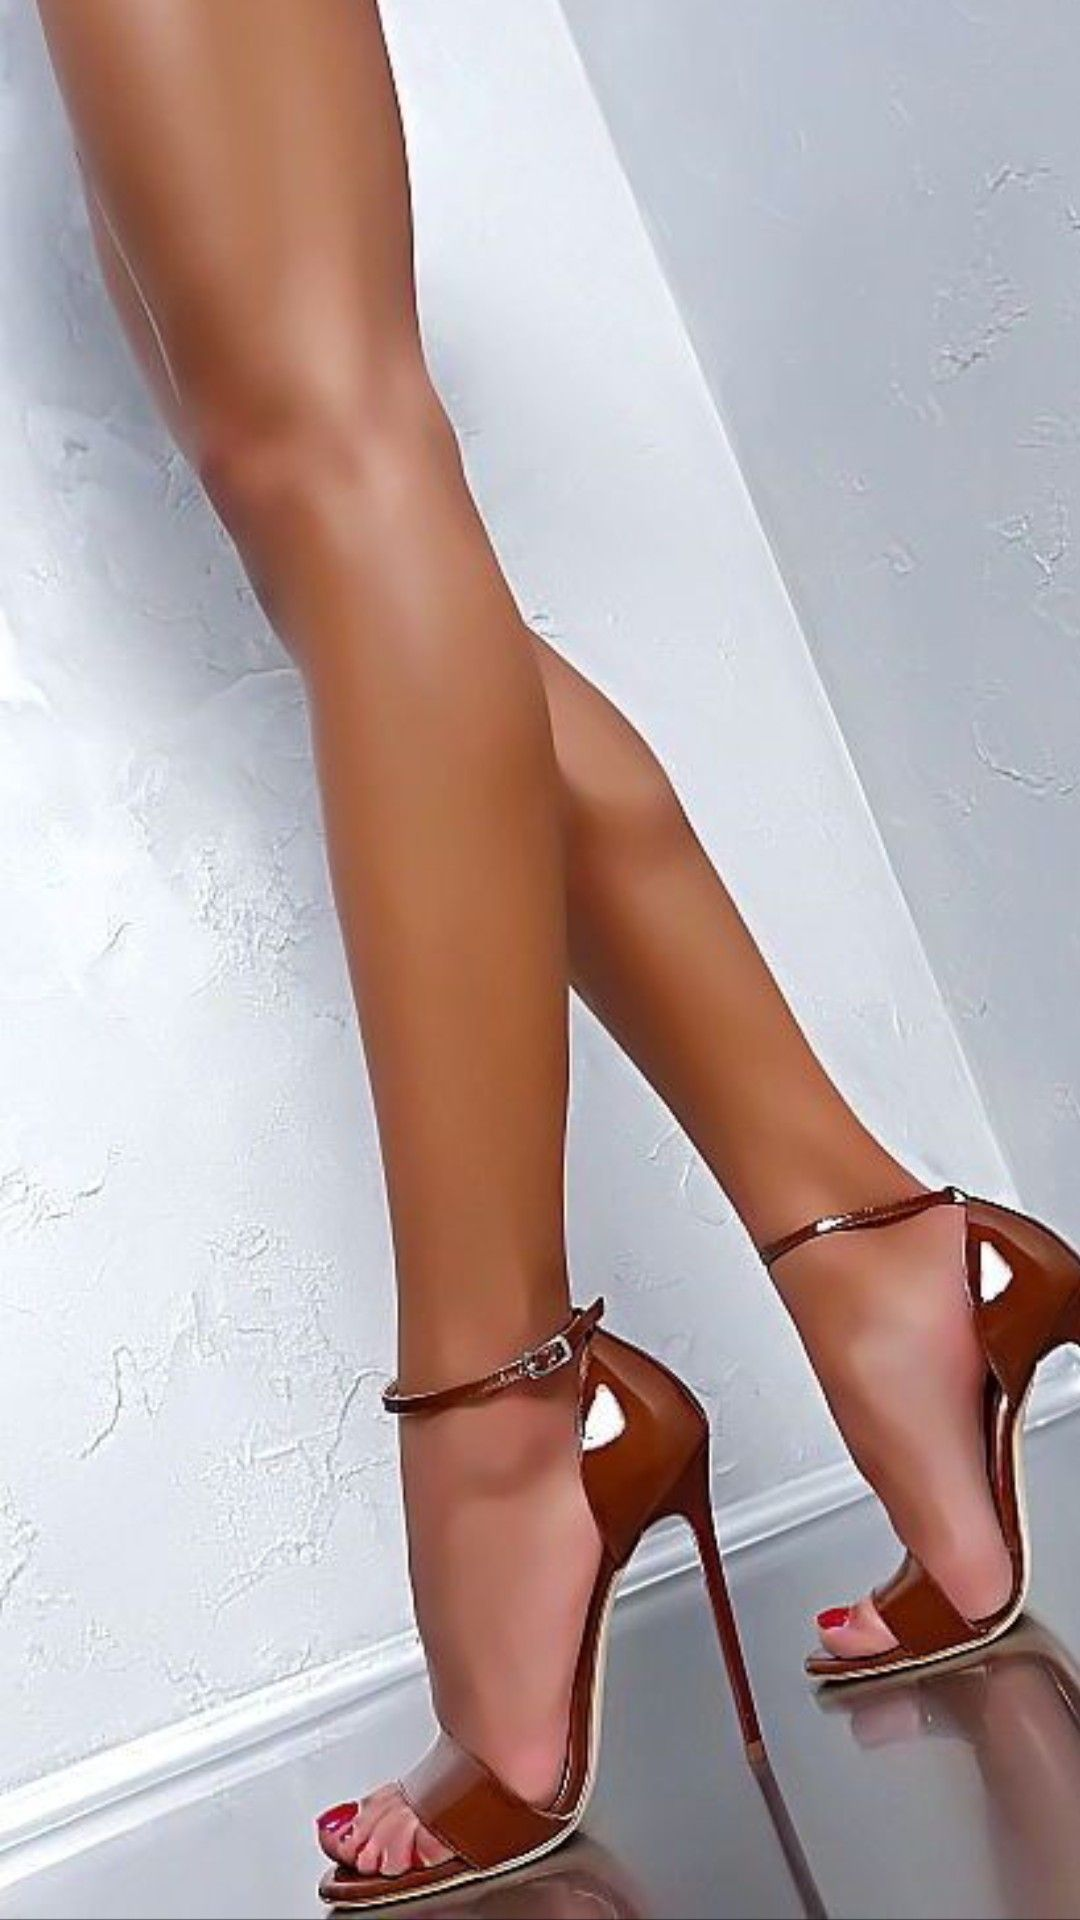 21995c574 classy hot heels!! #hothighheelslegs | heels | Shoes, Stiletto heels ...